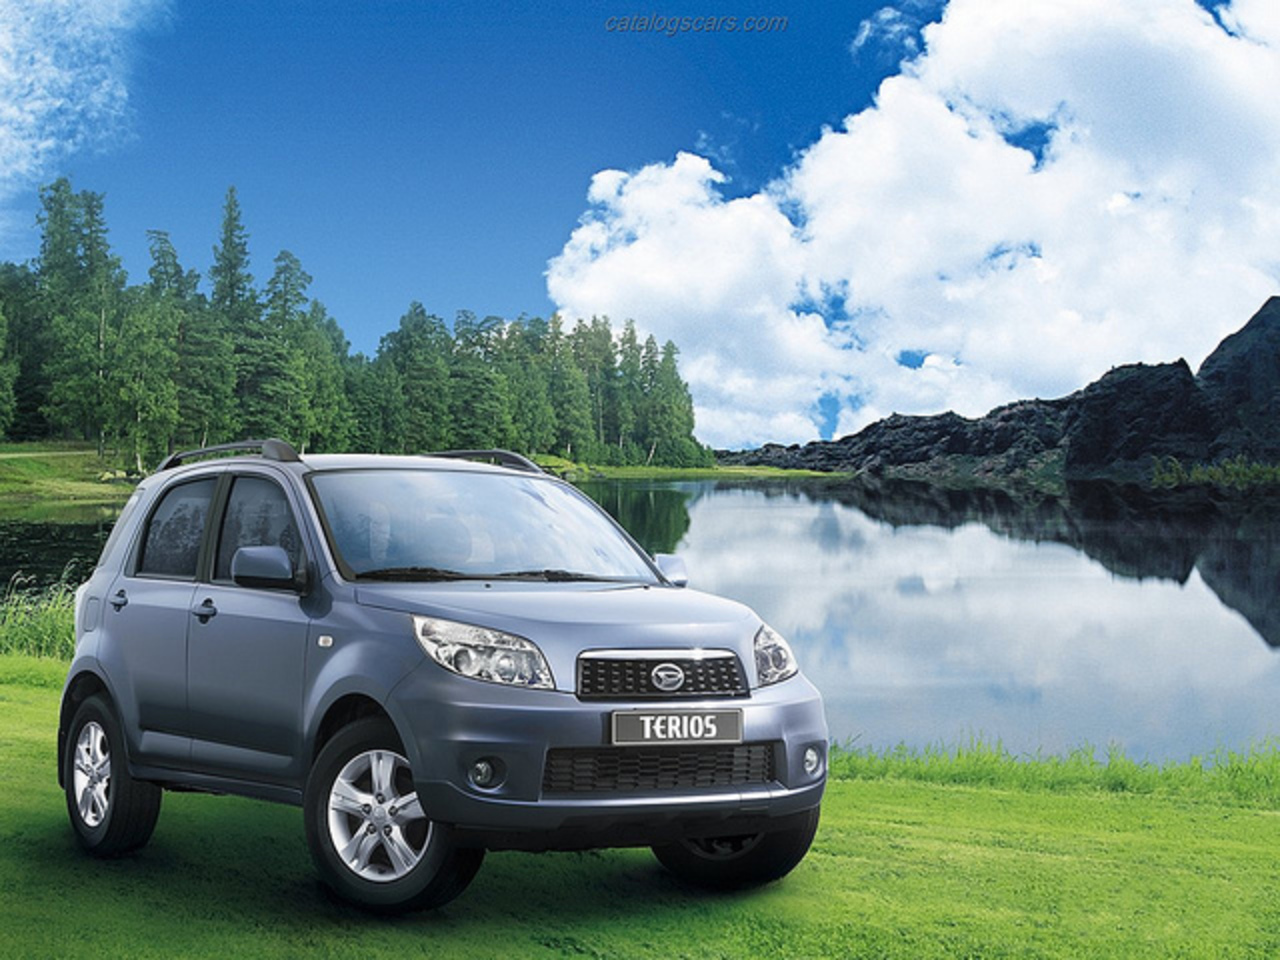 Daihatsu Terios 2013 | Flickr - Photo Sharing!